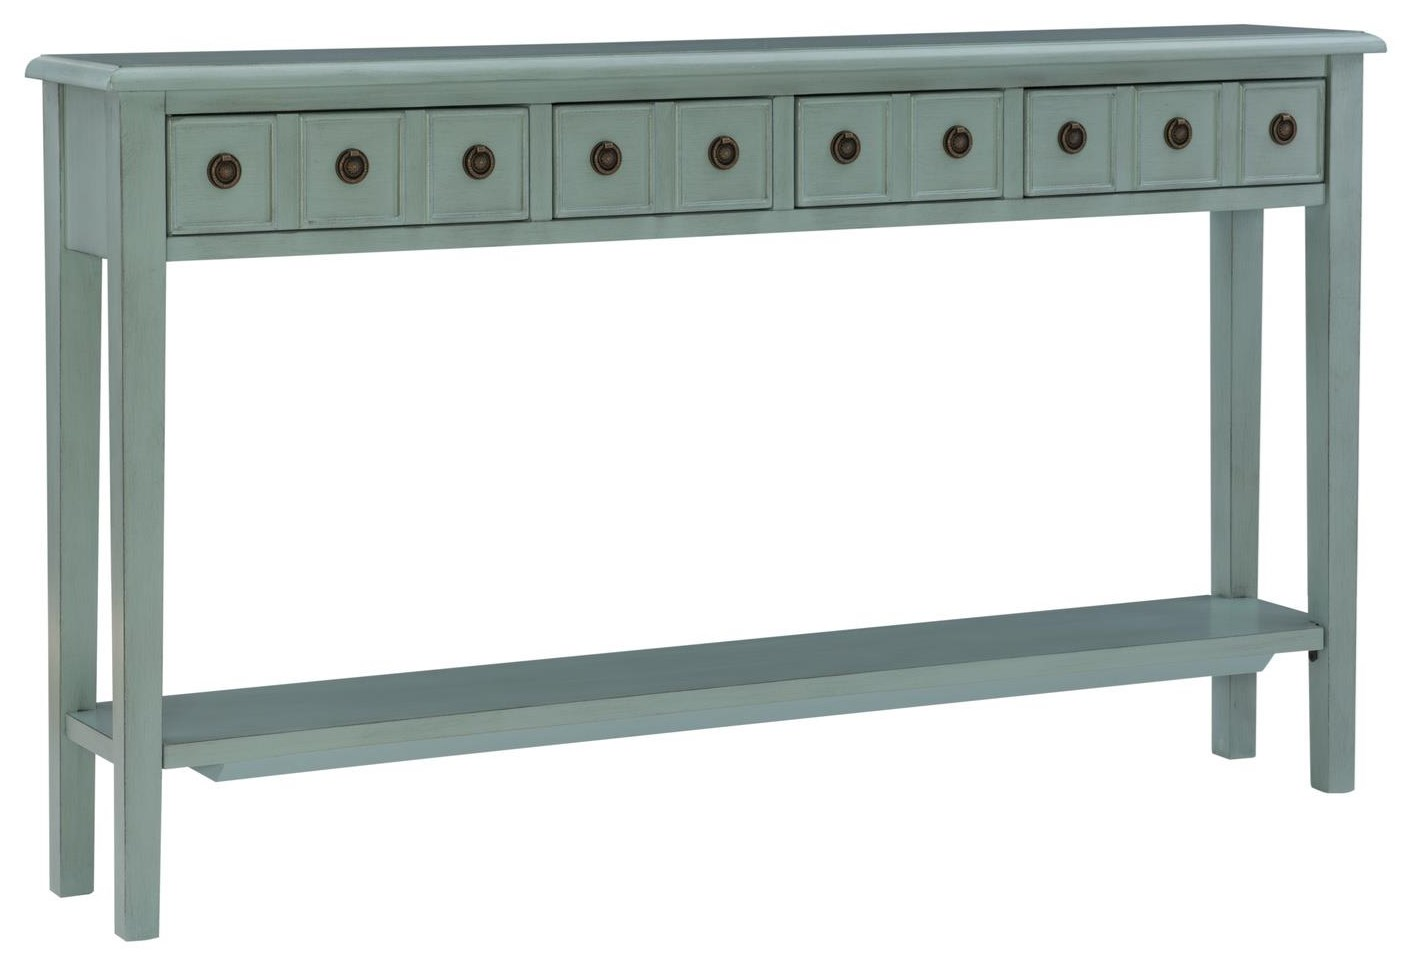 19A8213 TEAL 60INCH TEAL CONSOLE by Powell at Furniture Fair - North Carolina